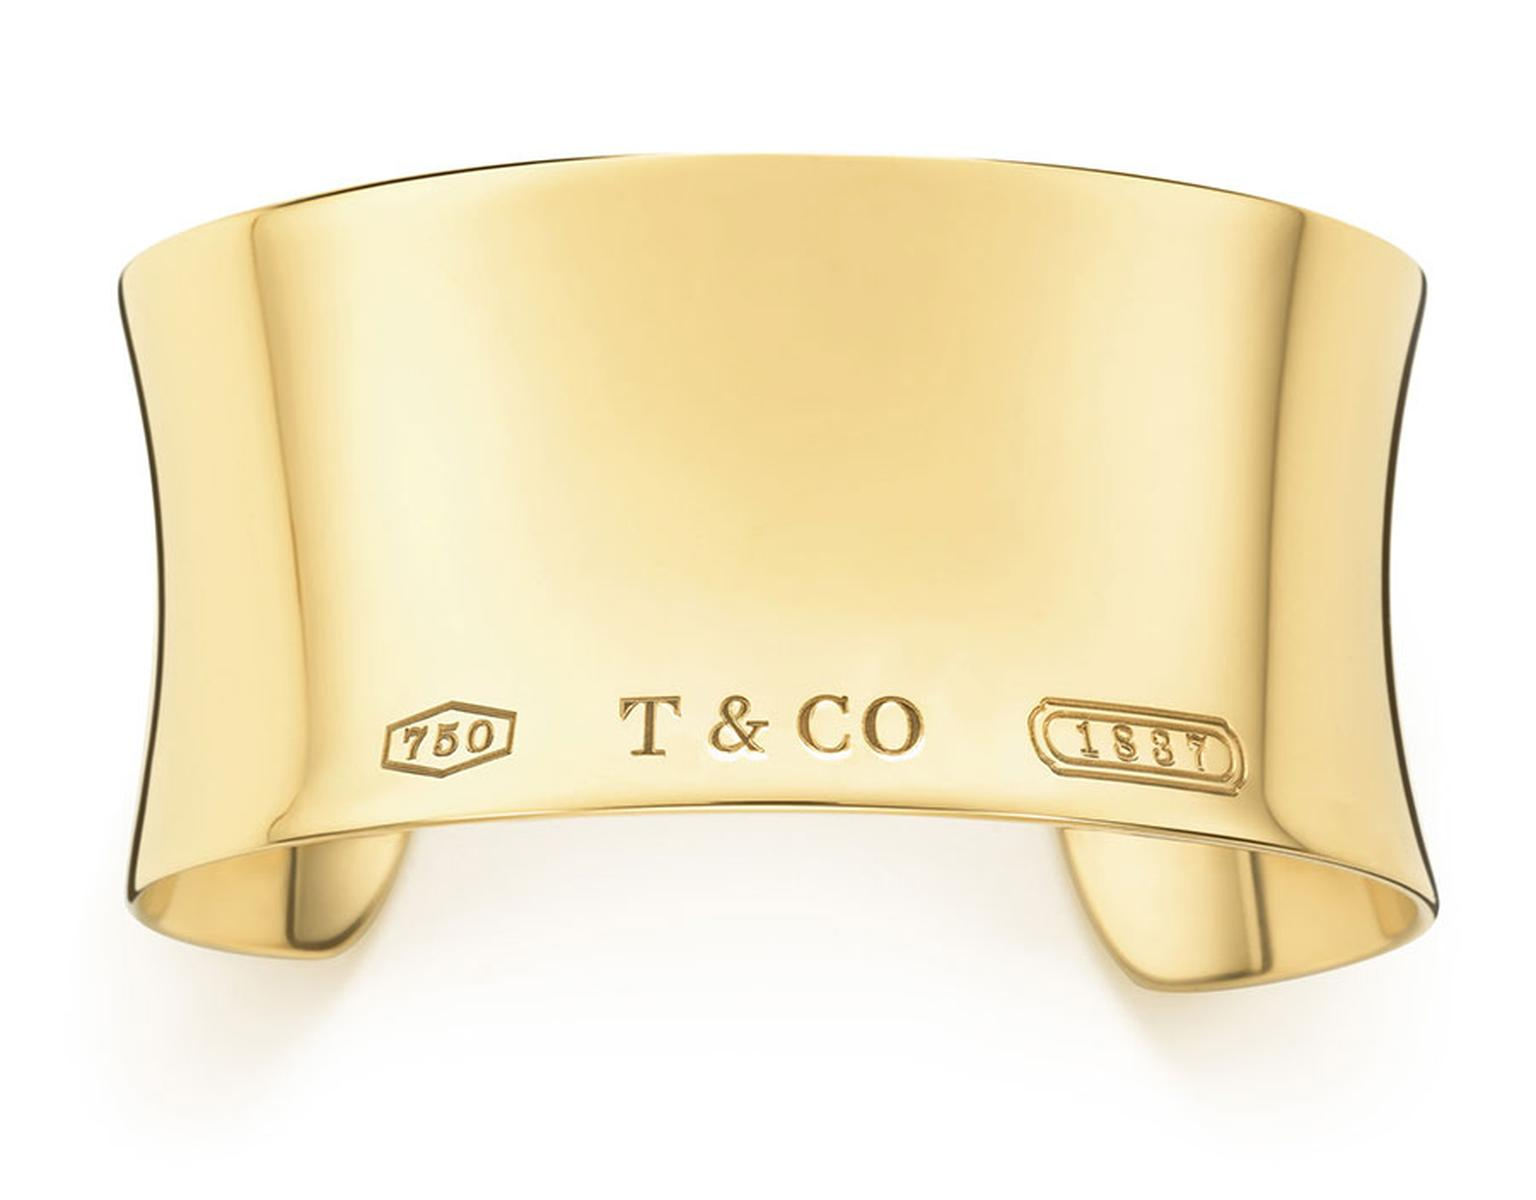 Tiffany-1837-Gold-Bangle